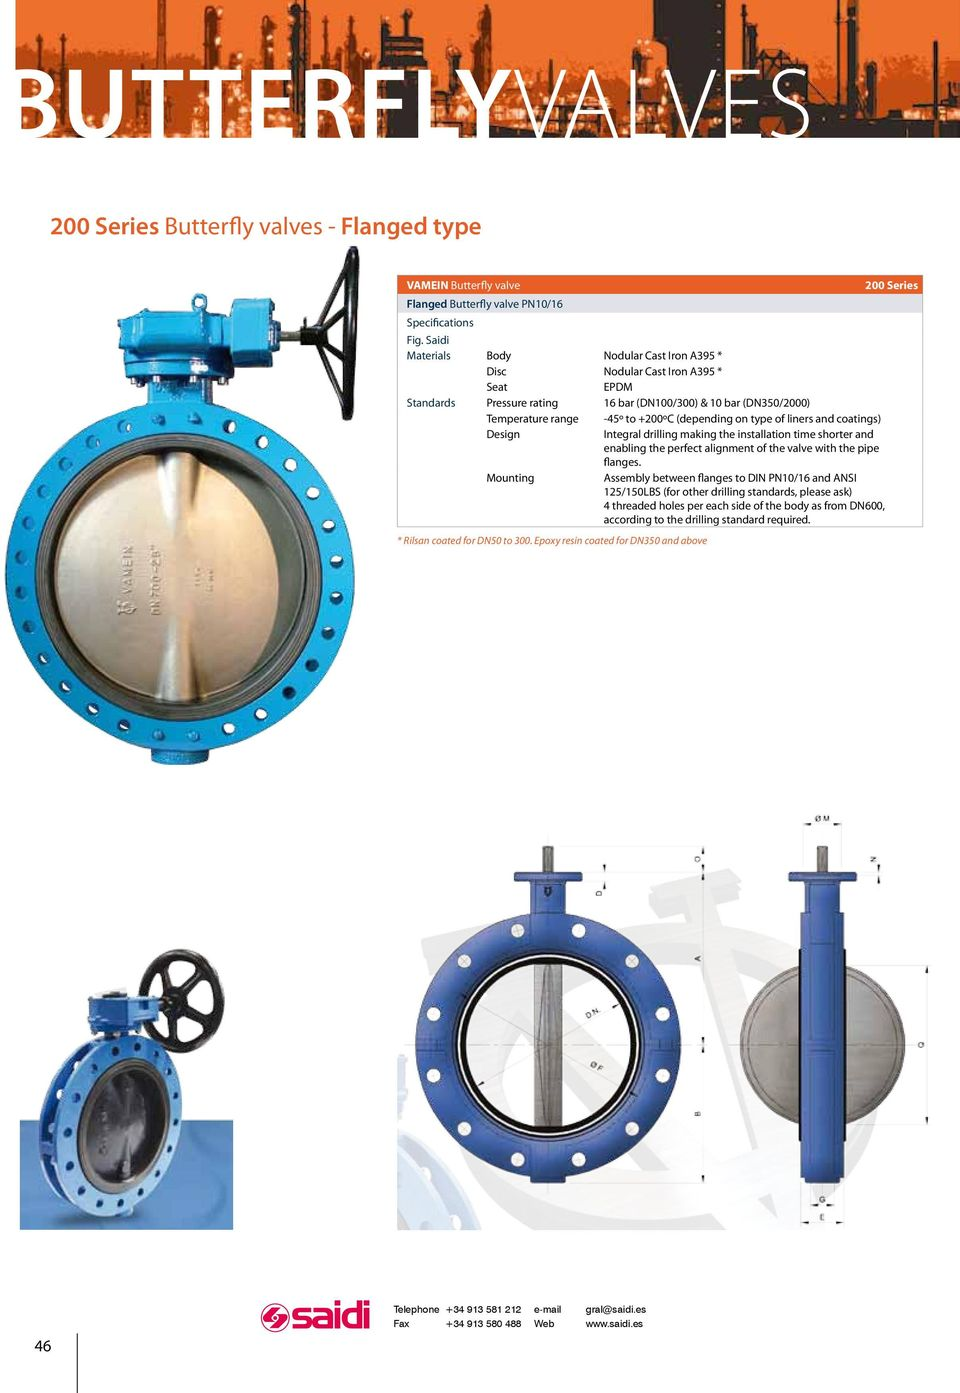 on type of liners and coatings) Design Integral drilling making the installation time shorter and enabling the perfect alignment of the valve with the pipe fanges.